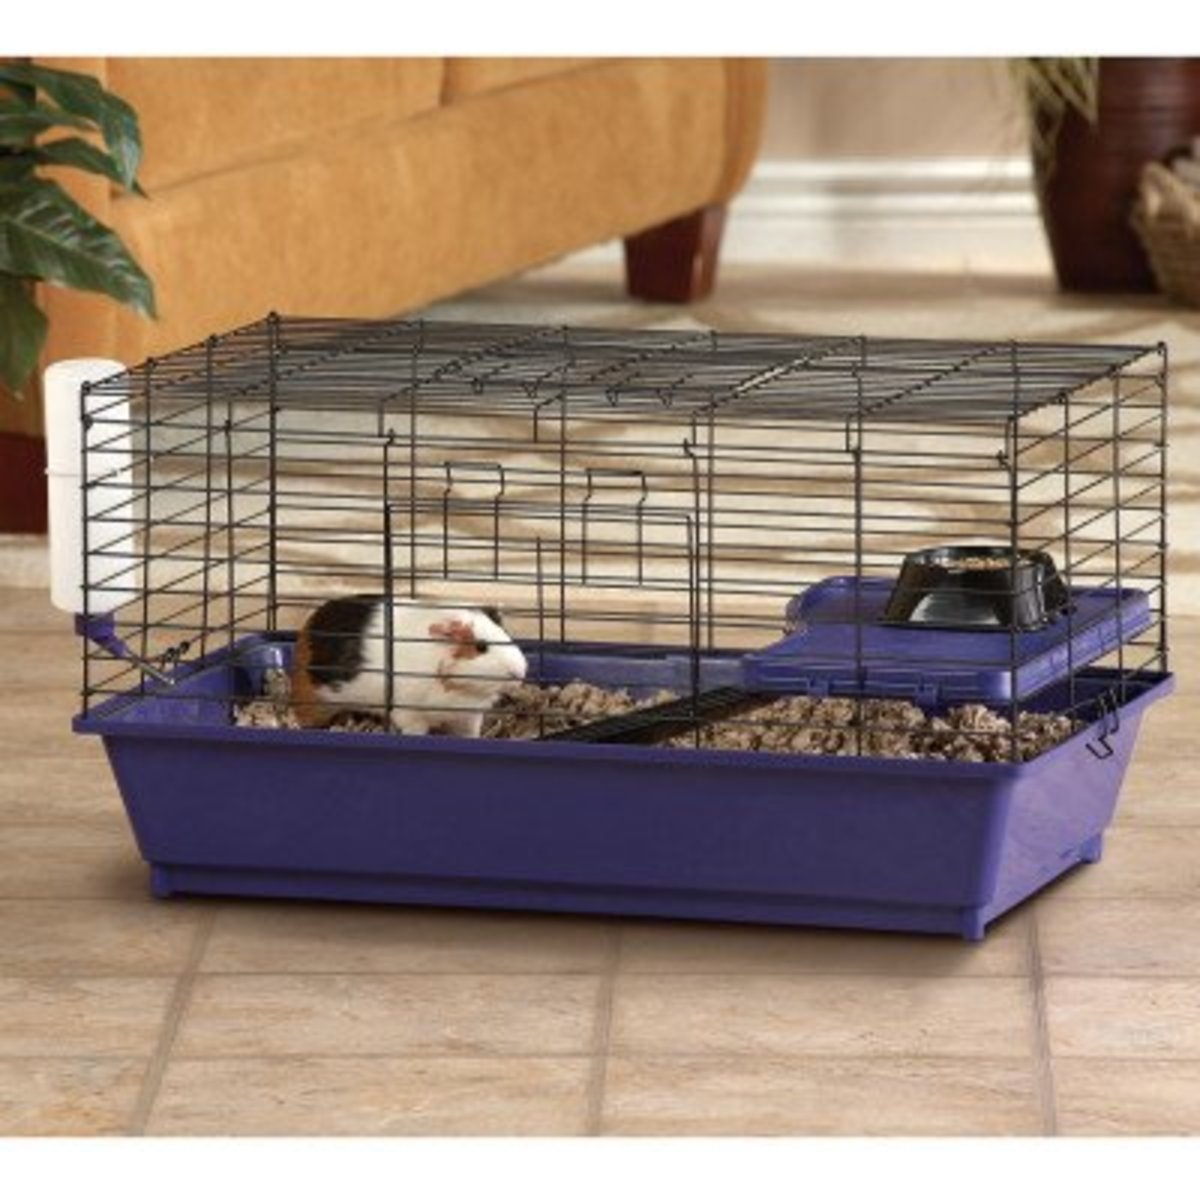 "Petsmart says this cage is a ""perfectly sized home for your guinea pig"". Not only is this cage less than half the size it should be, the $60 you would have spent buying it could have built you a C&C cage in the right size, with cash to spare."